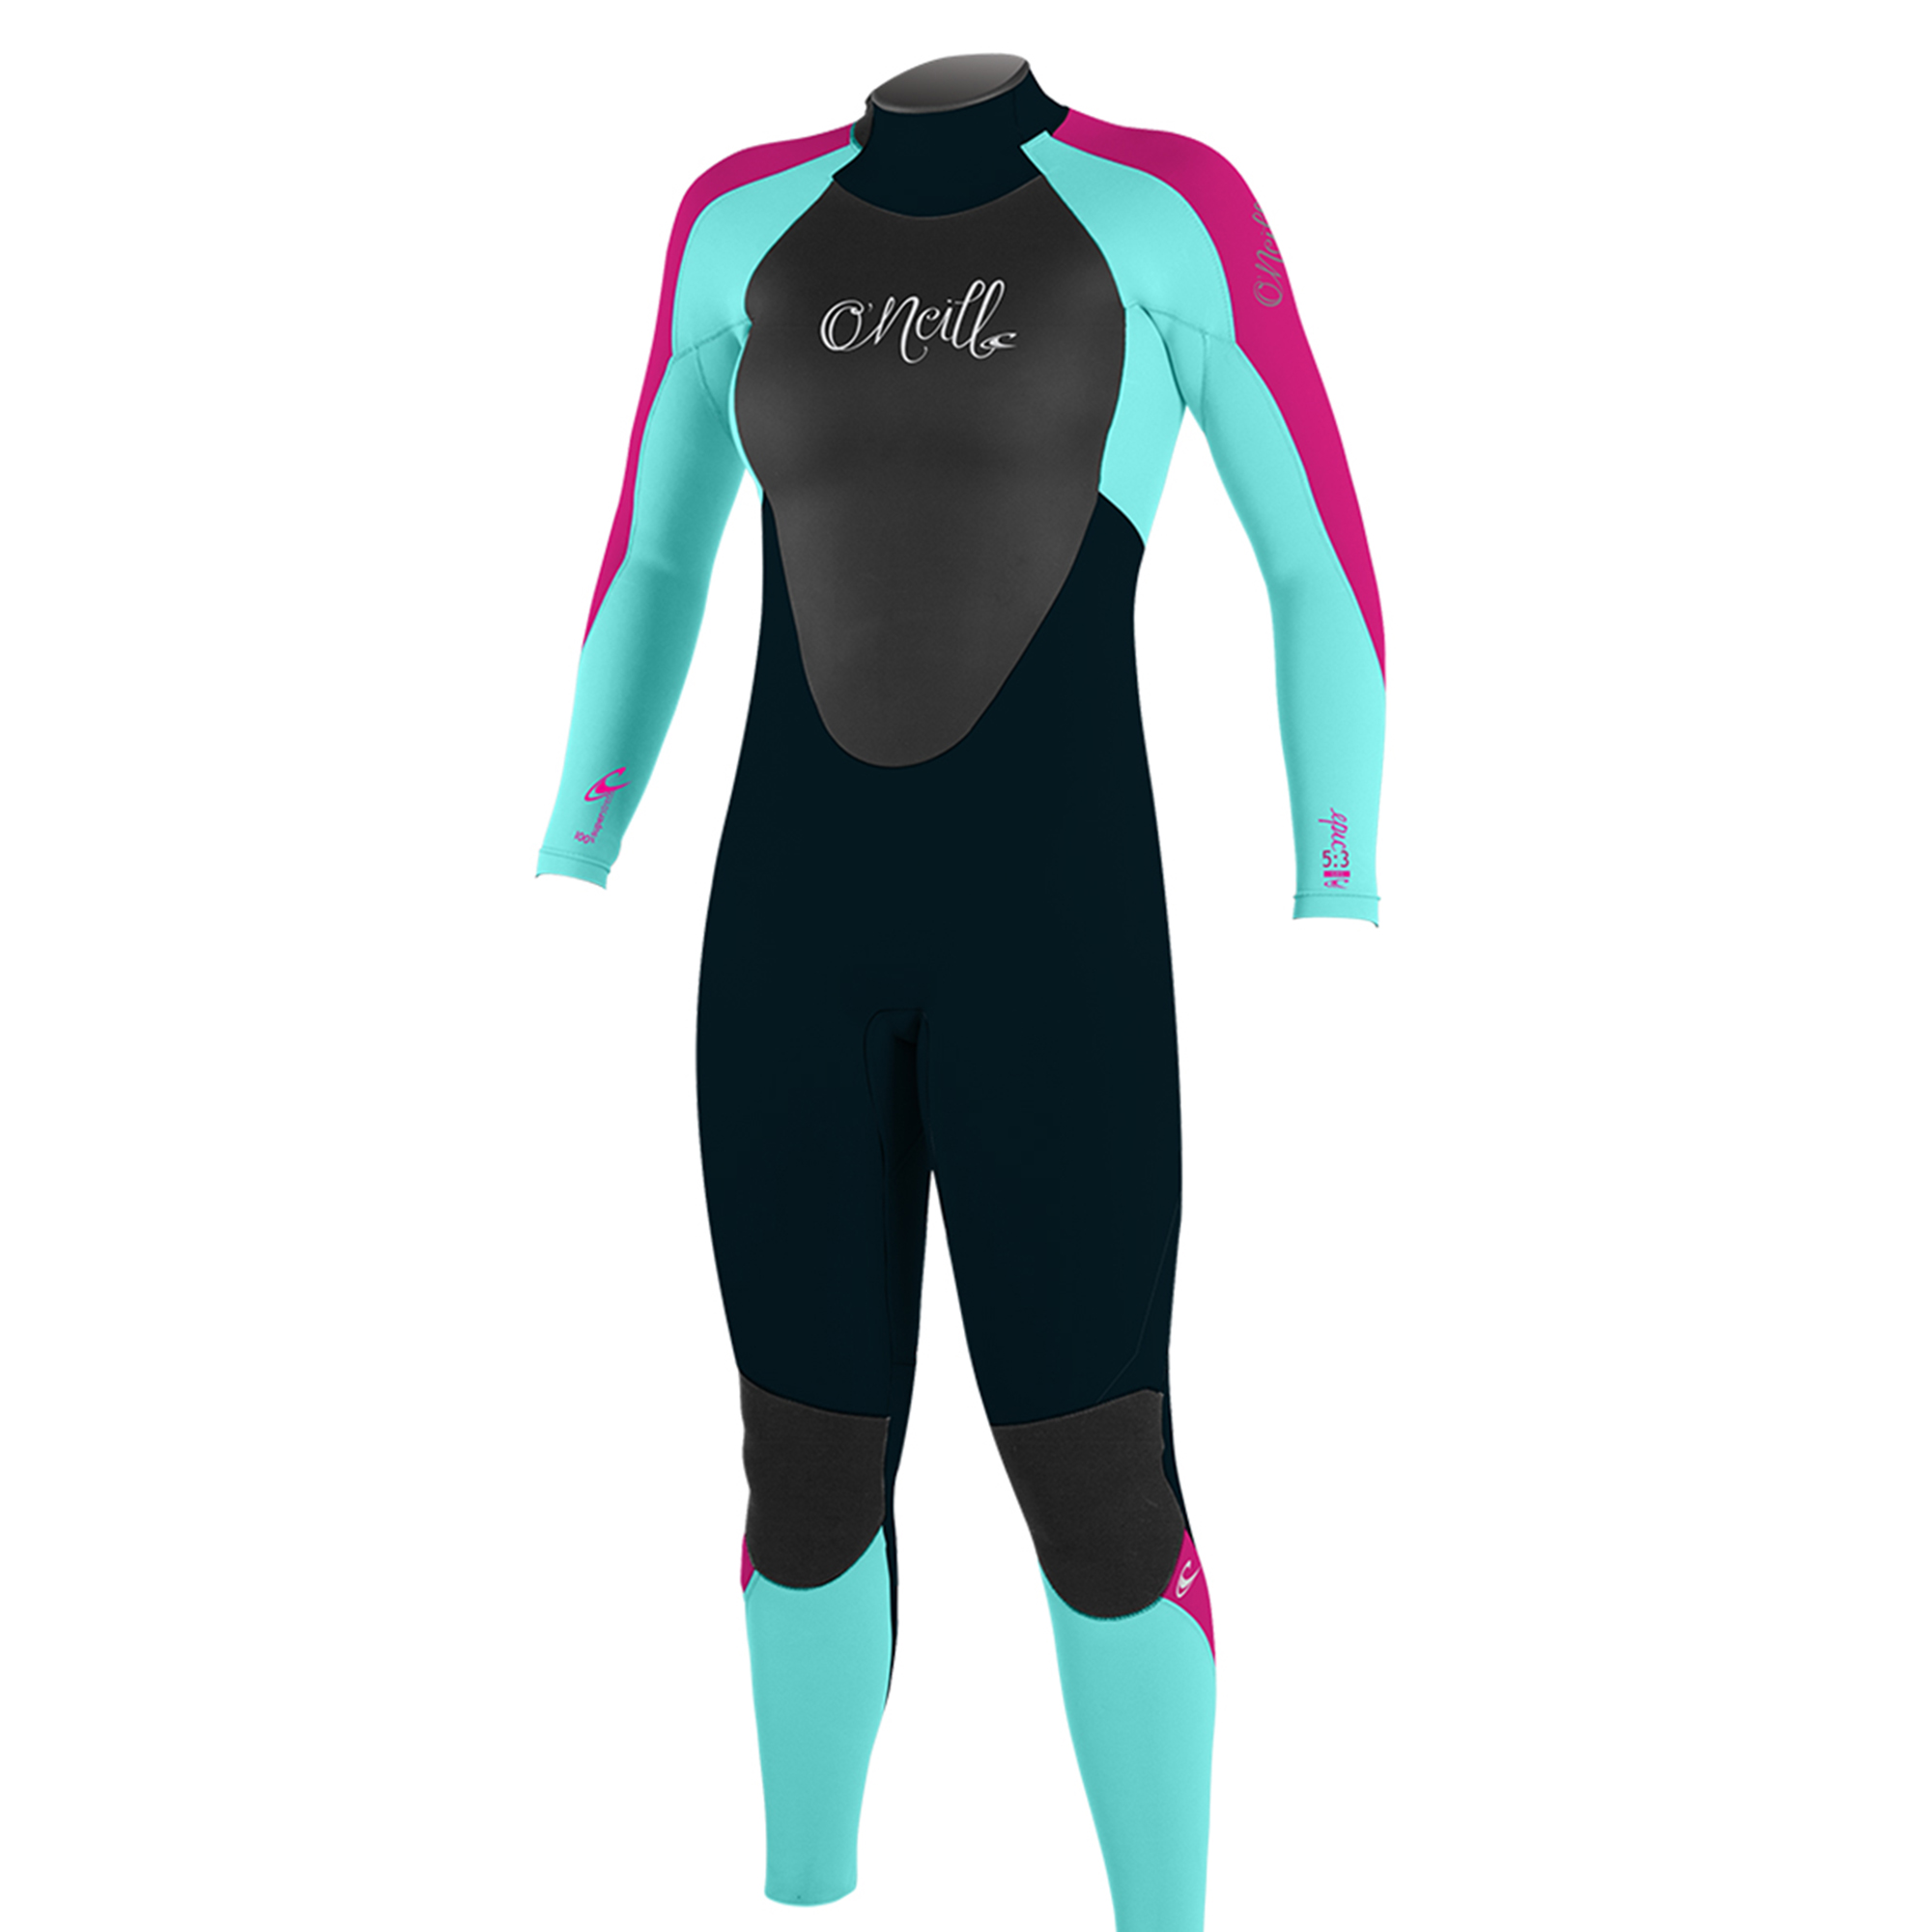 O'NEILL GIRL'S EPIC 3/2MM BACK ZIP FULL WETSUIT (Multiple Sizes and Colors)